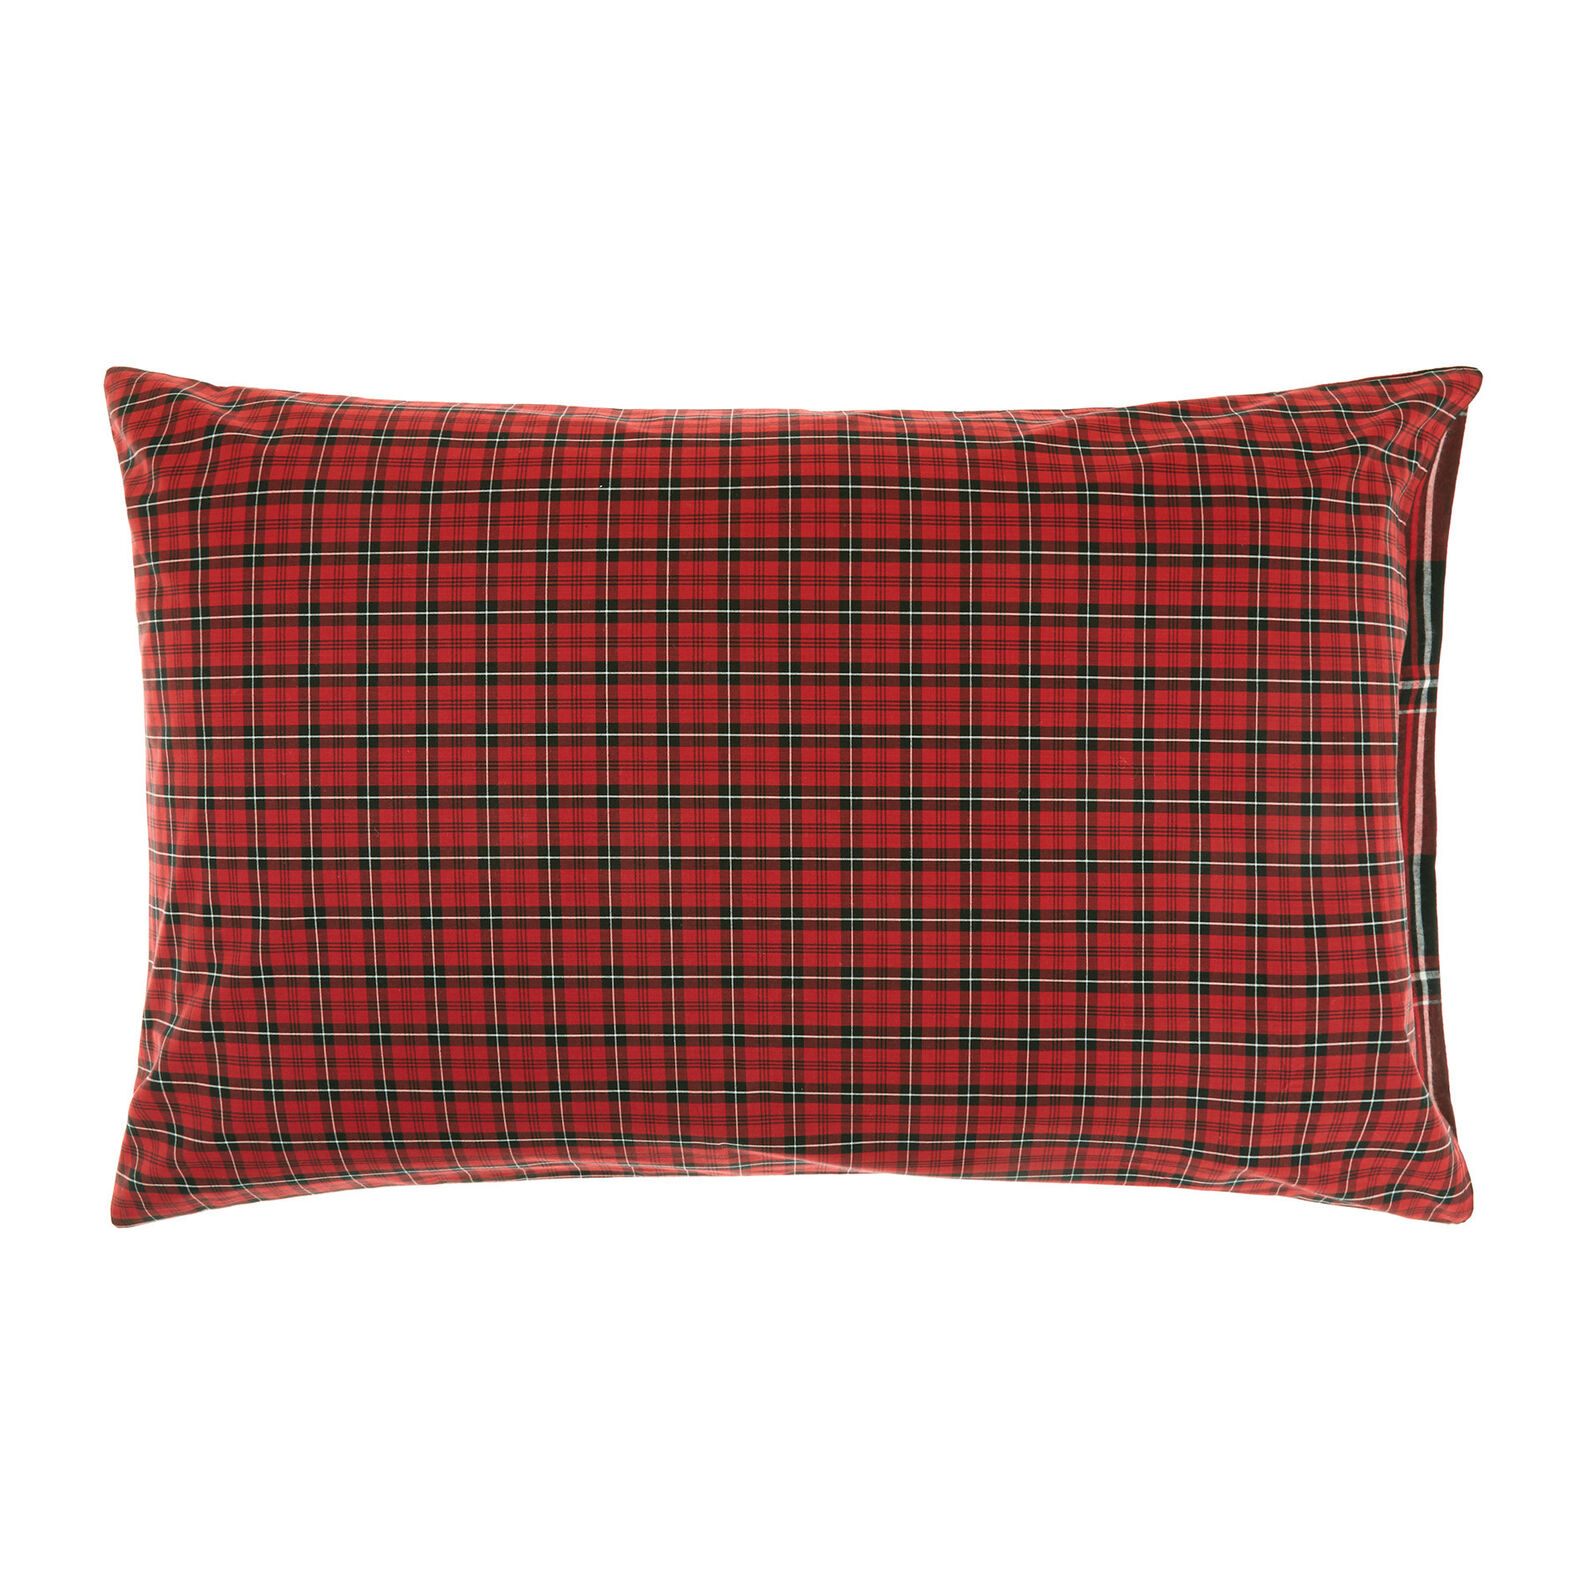 Cotton and flannel pillowcase with check motif